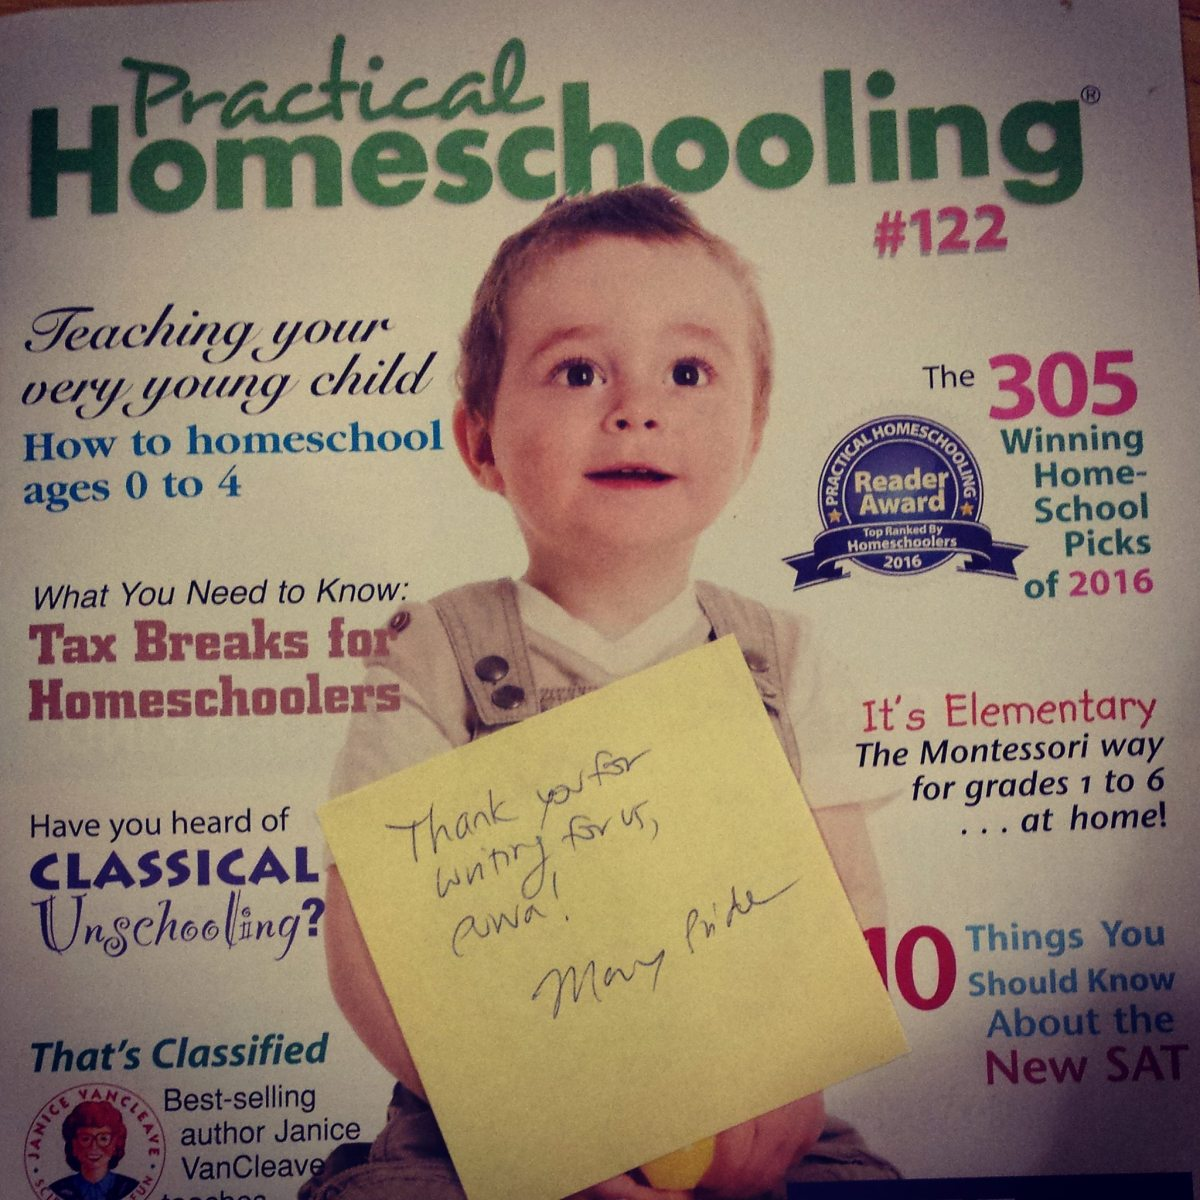 Now in Practical Homeschooling!